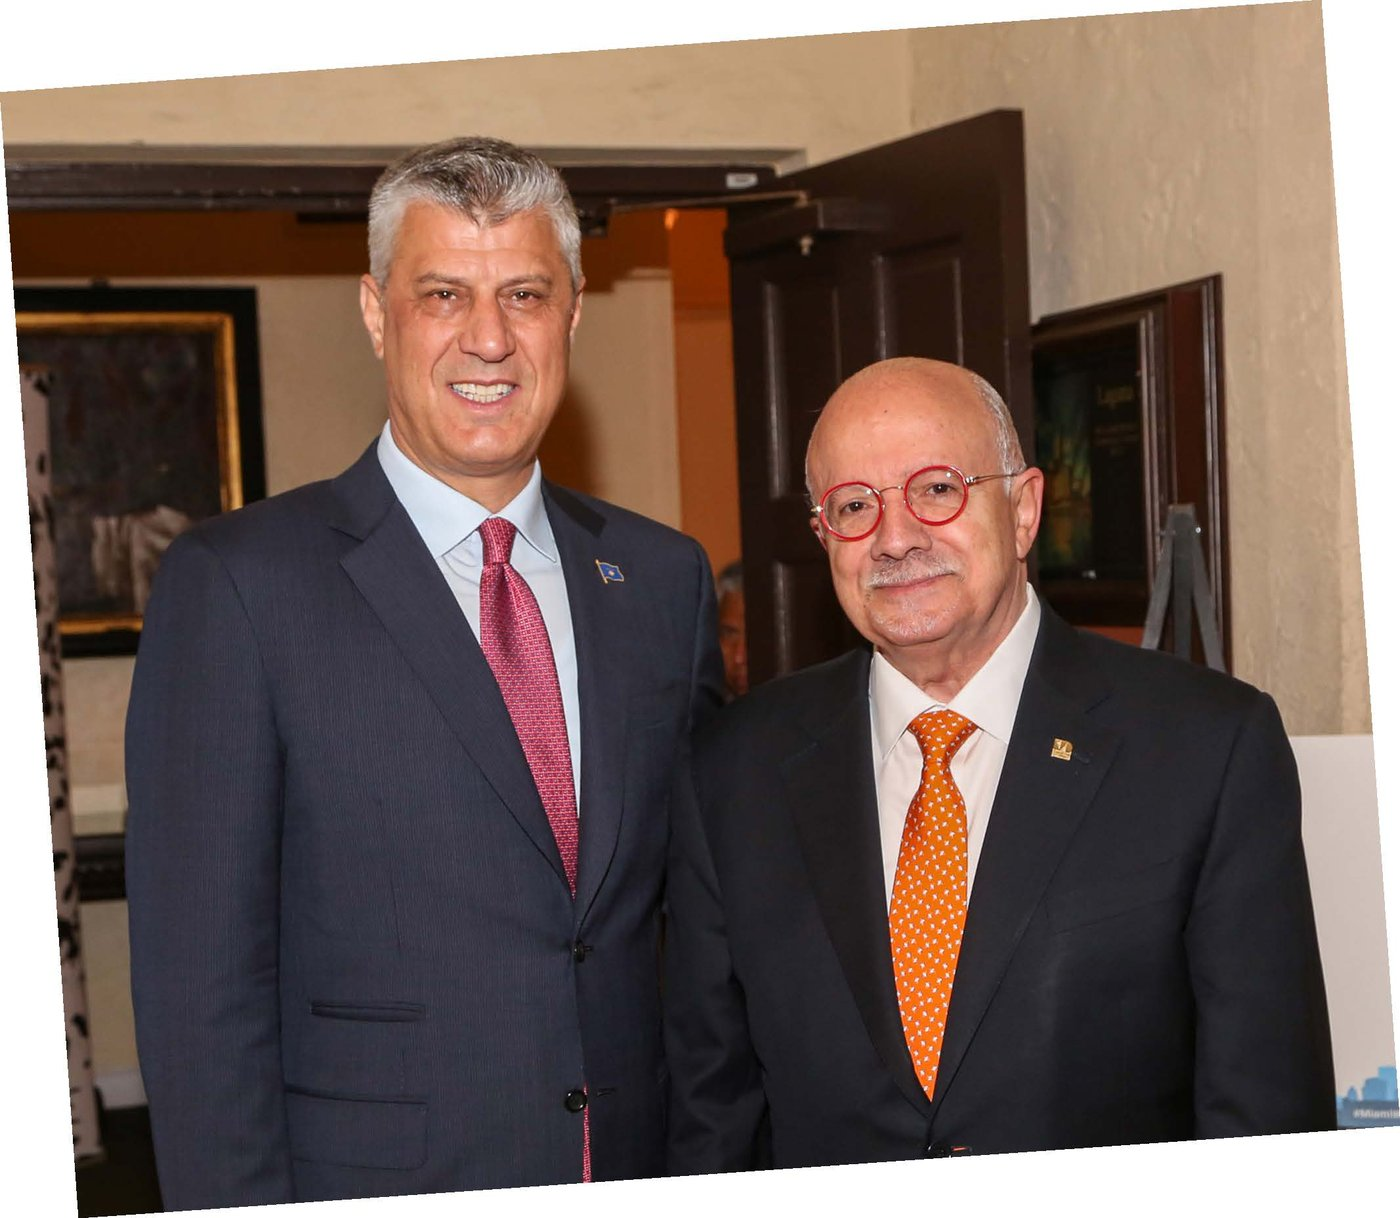 President of the Republic of Kosovo Hashim Thaci and President Padrón